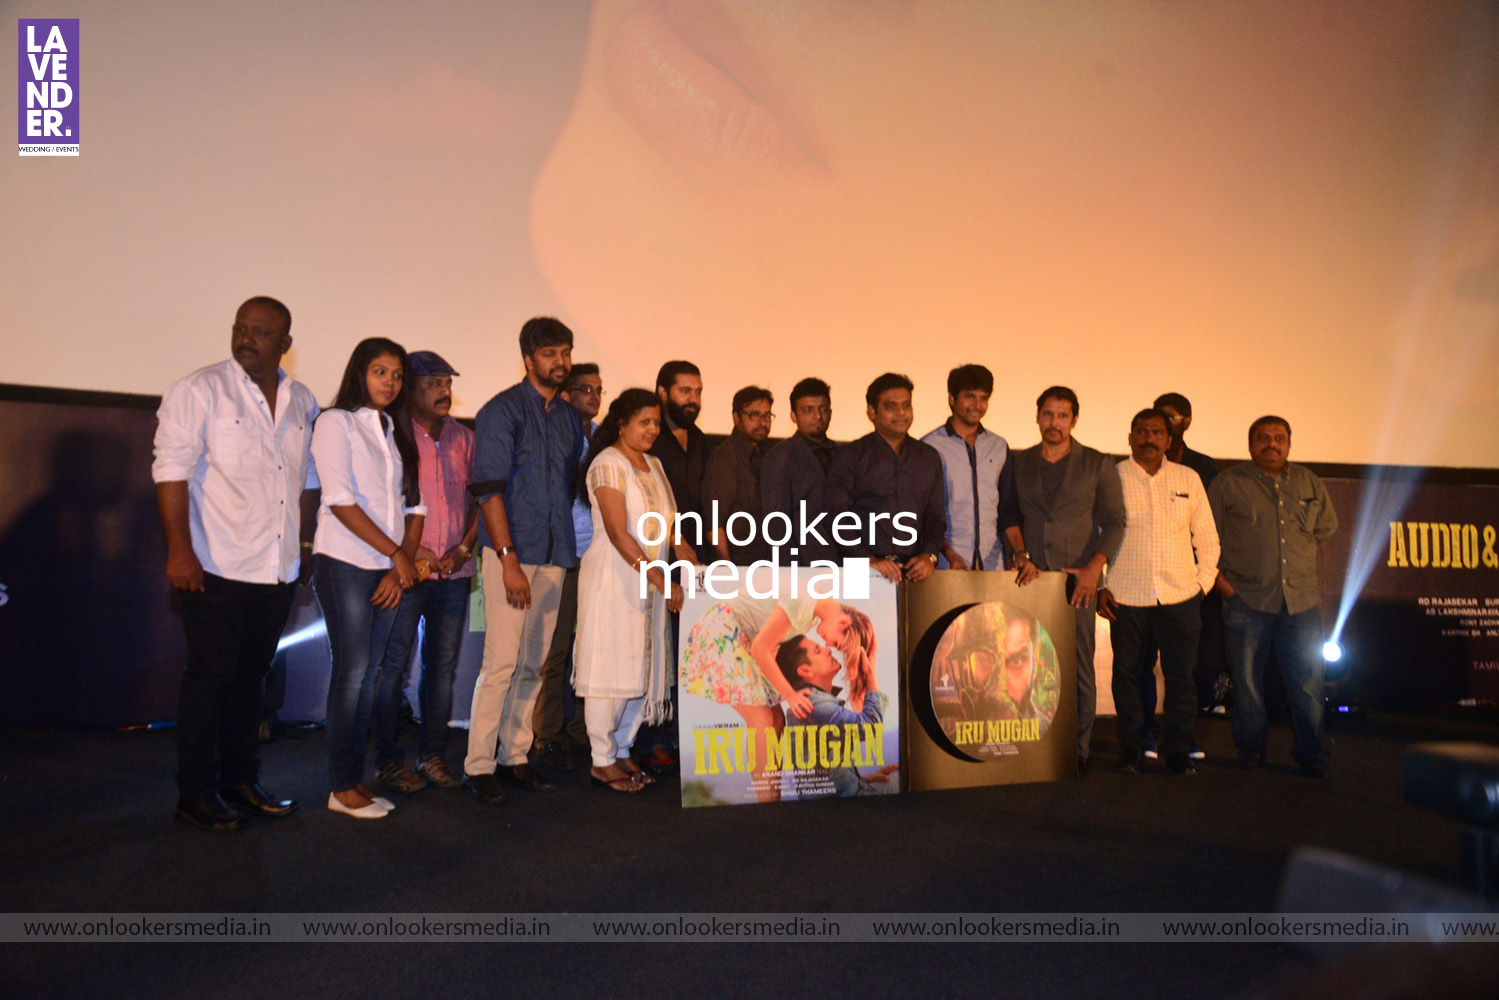 http://onlookersmedia.in/wp-content/uploads/2016/08/Iru-Mugan-Audio-Launch-Stills-Photos-Vikram-Nivin-Pauly-106.jpg